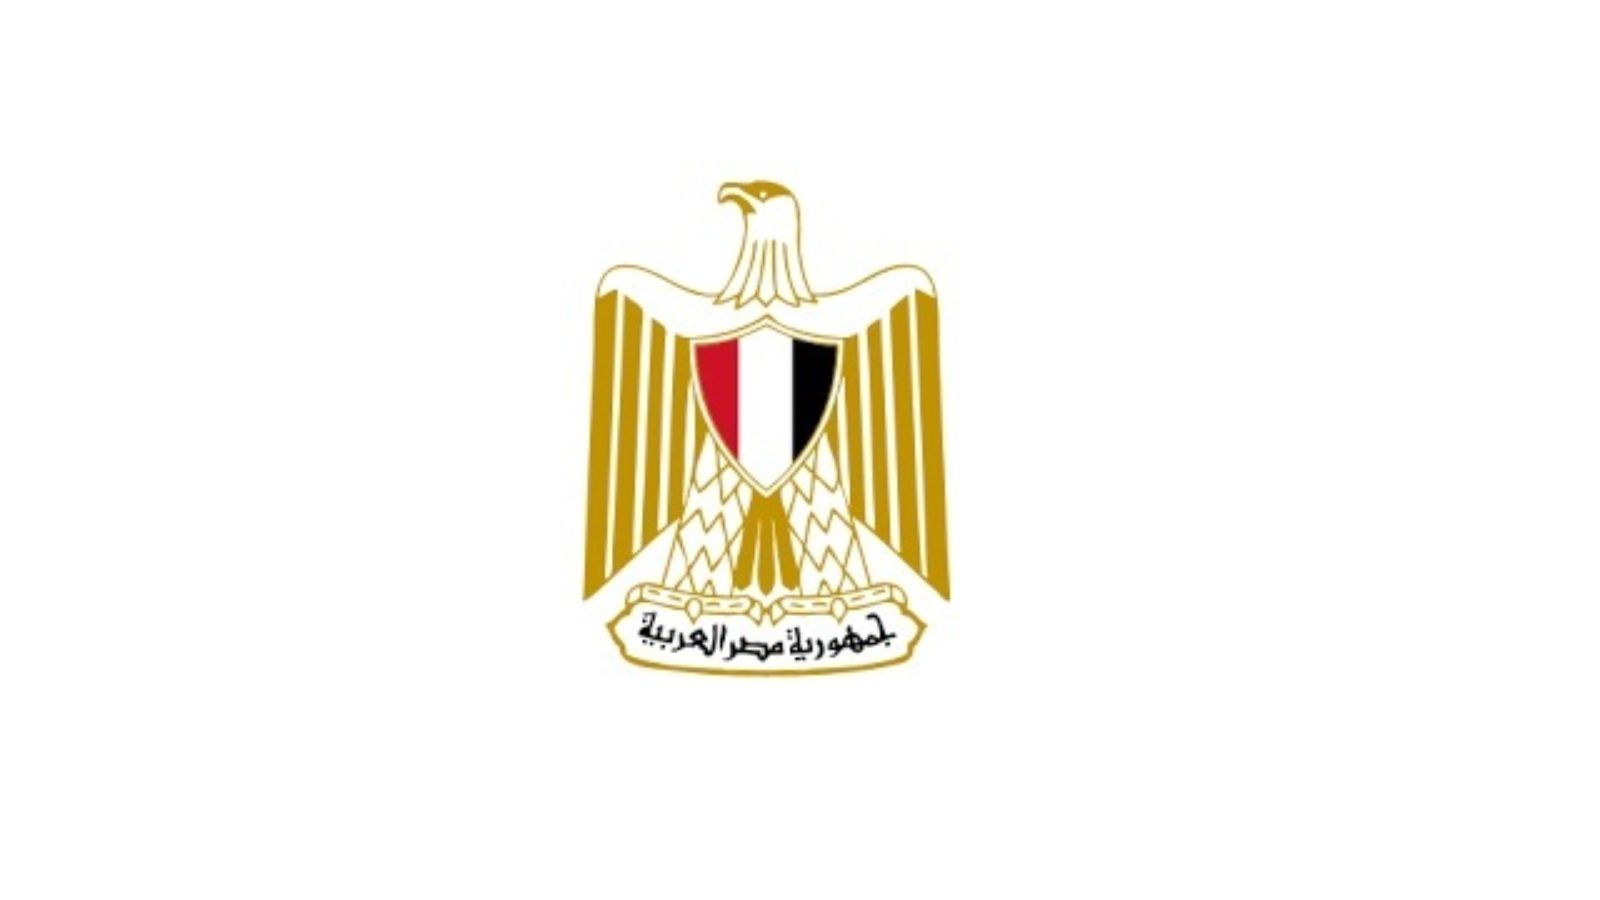 Note from Embassy of Egypt in London re pre-registration system for shipments